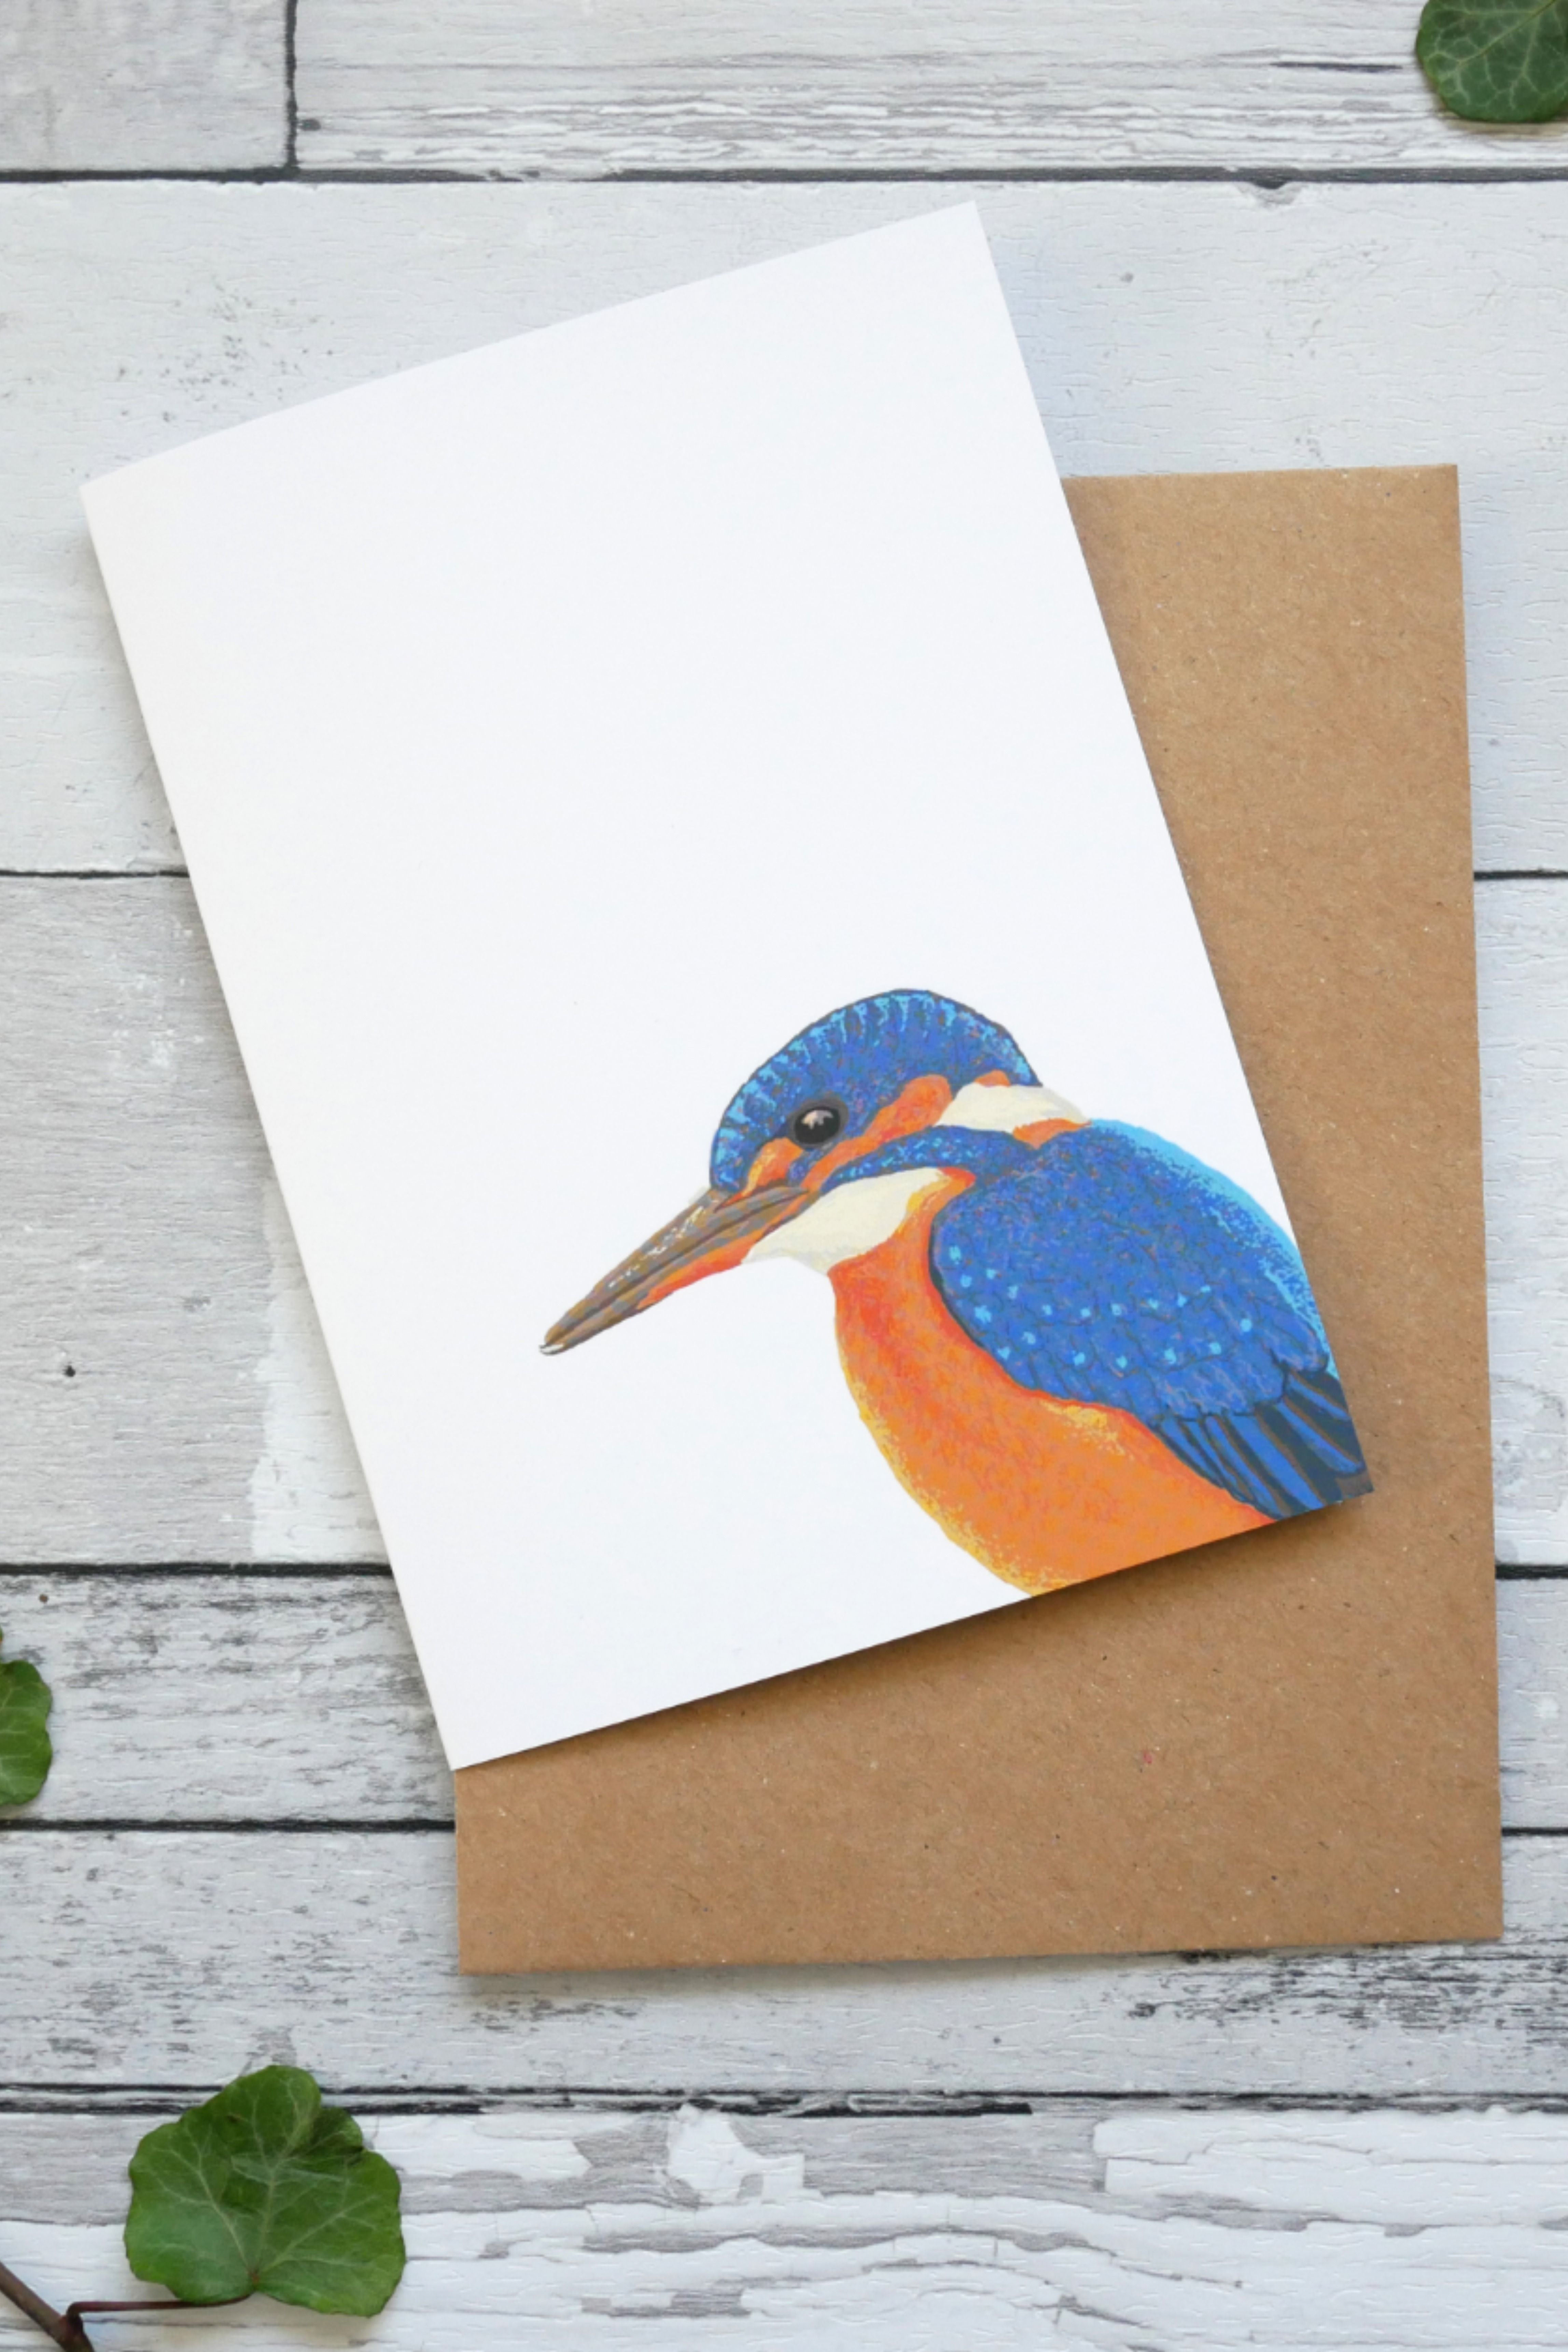 Kingfisher Greetings Card Recycled Blank Card British Birds Greeting Cards Cards Crafts